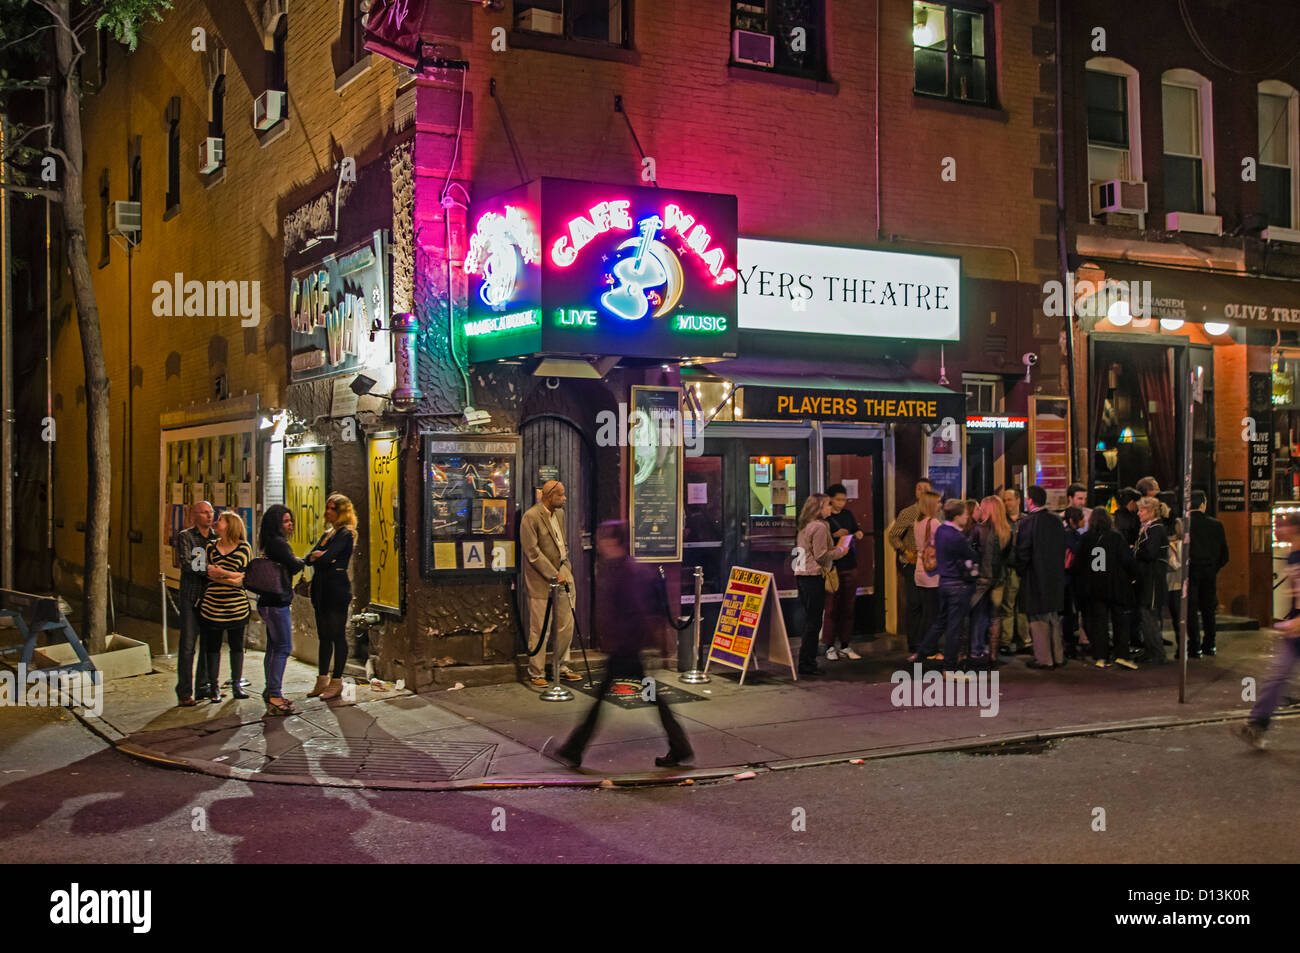 Greenwich Village, Thompsen street, Nightlife, Bars, Cafe Wha , live Music, street, NYC - Stock Image